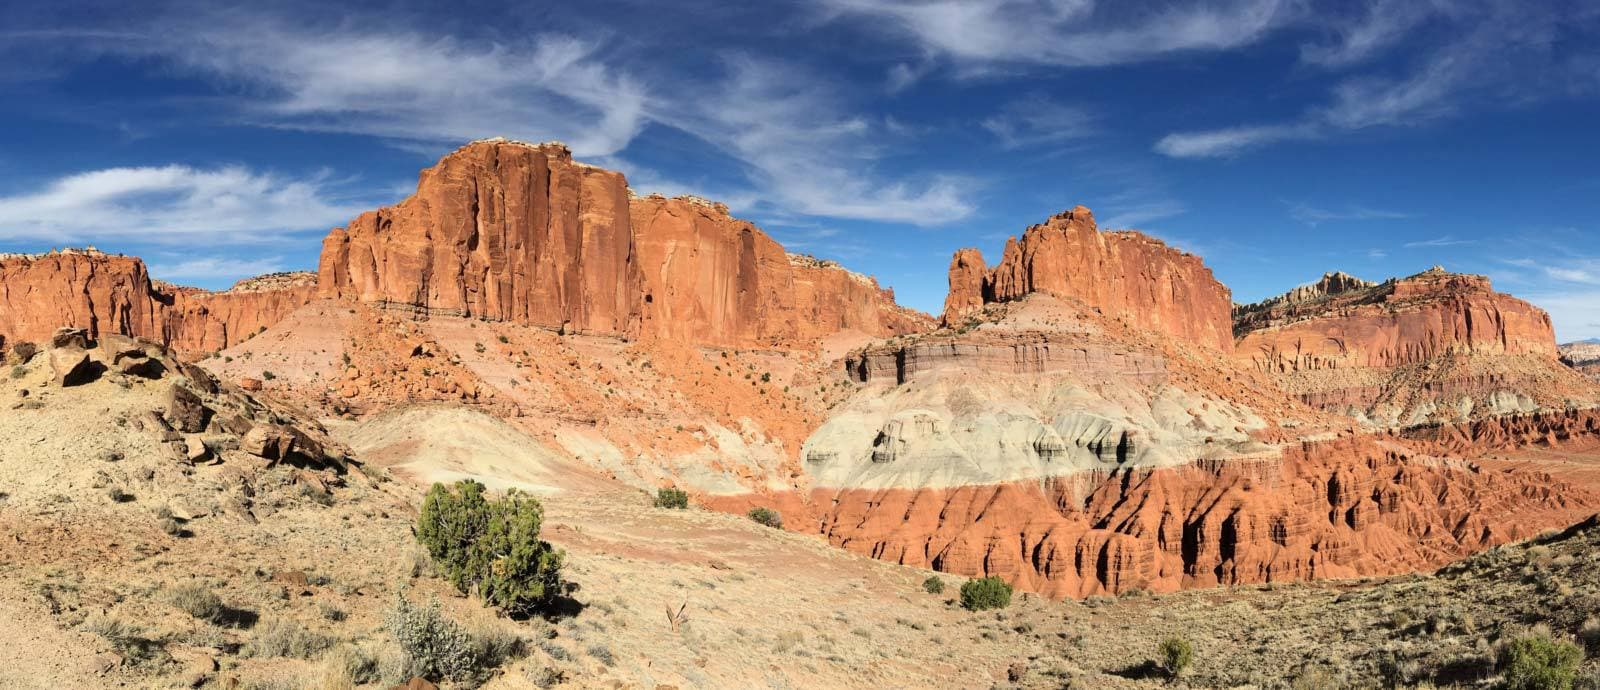 Waterpocket Fold in Utah's Capital Reef National Park